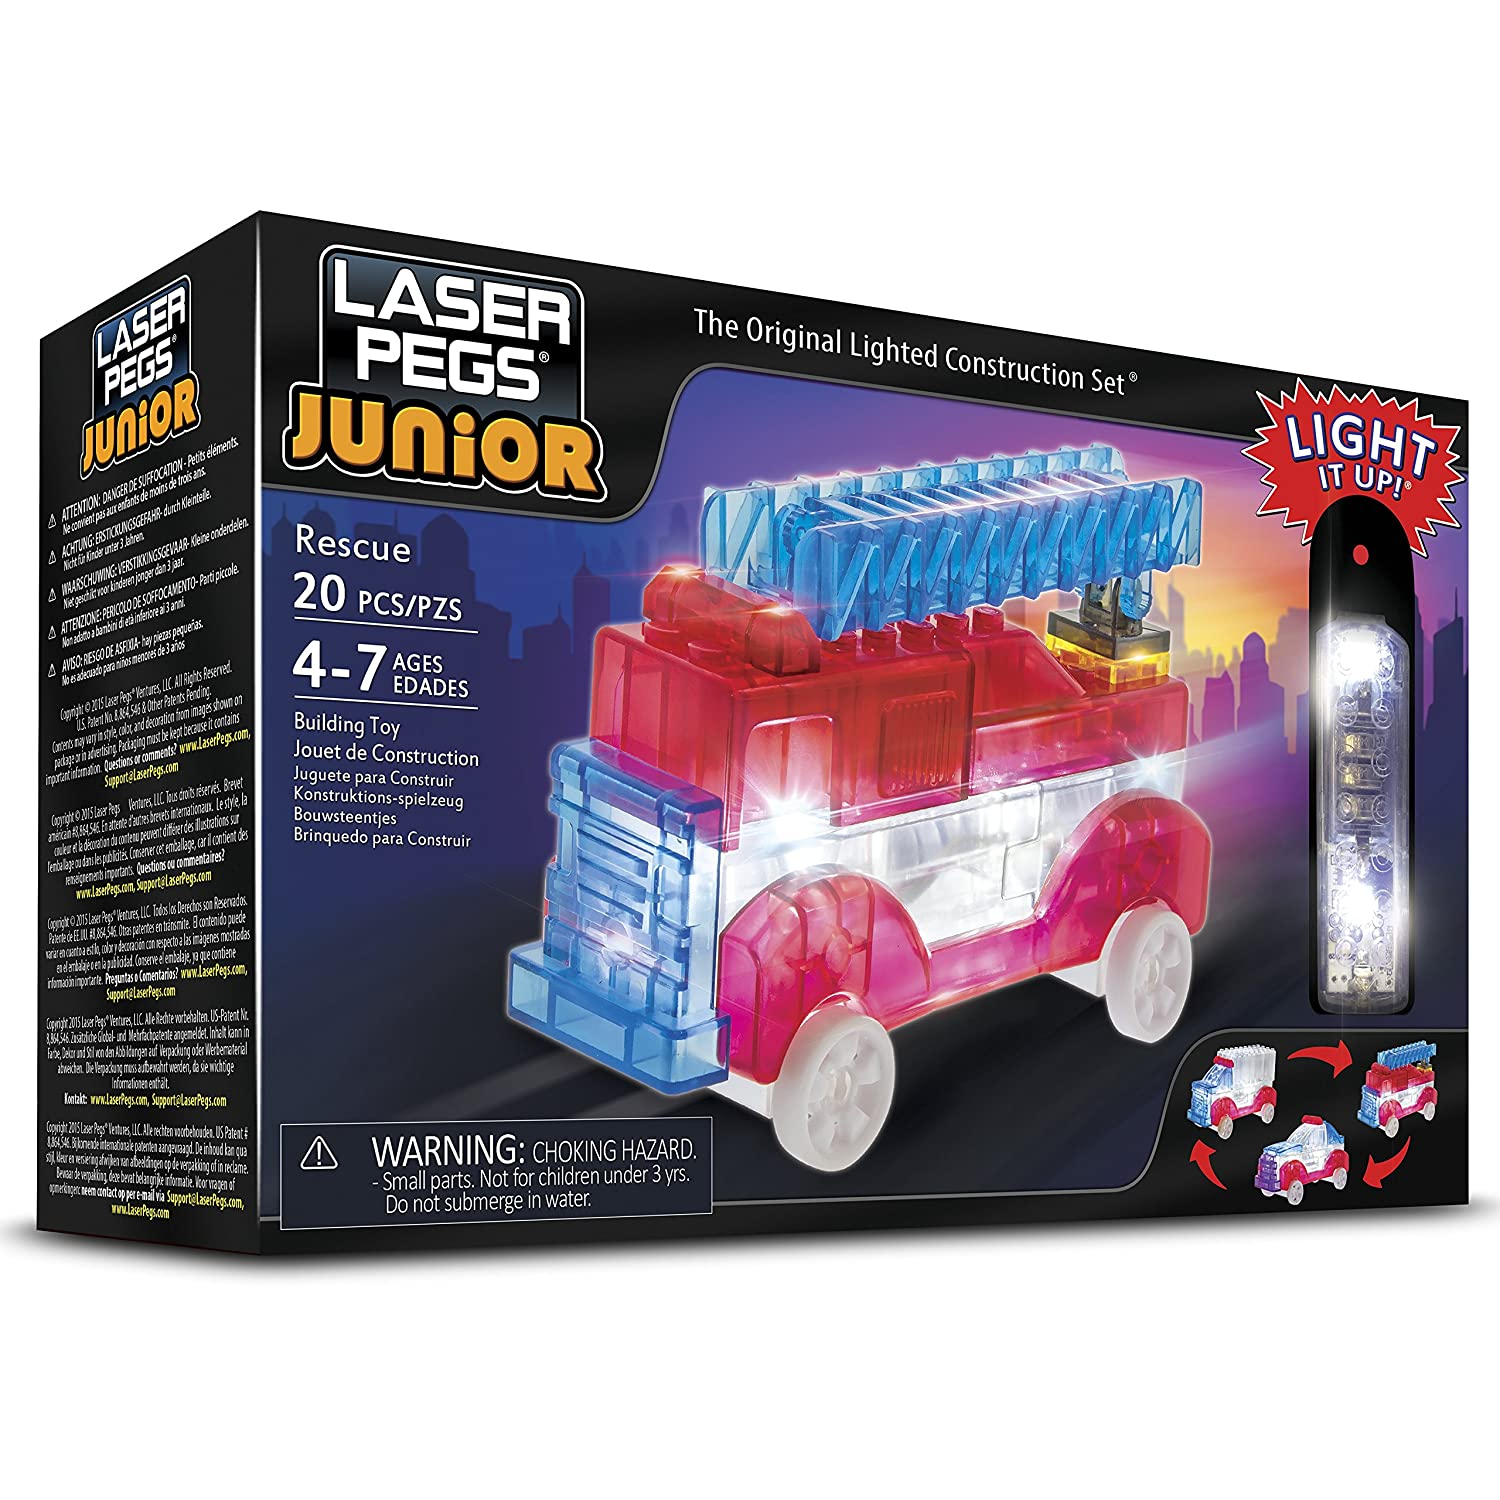 3 in 1 Rescue Building Kit ZD006 Laser Pegs Juniors